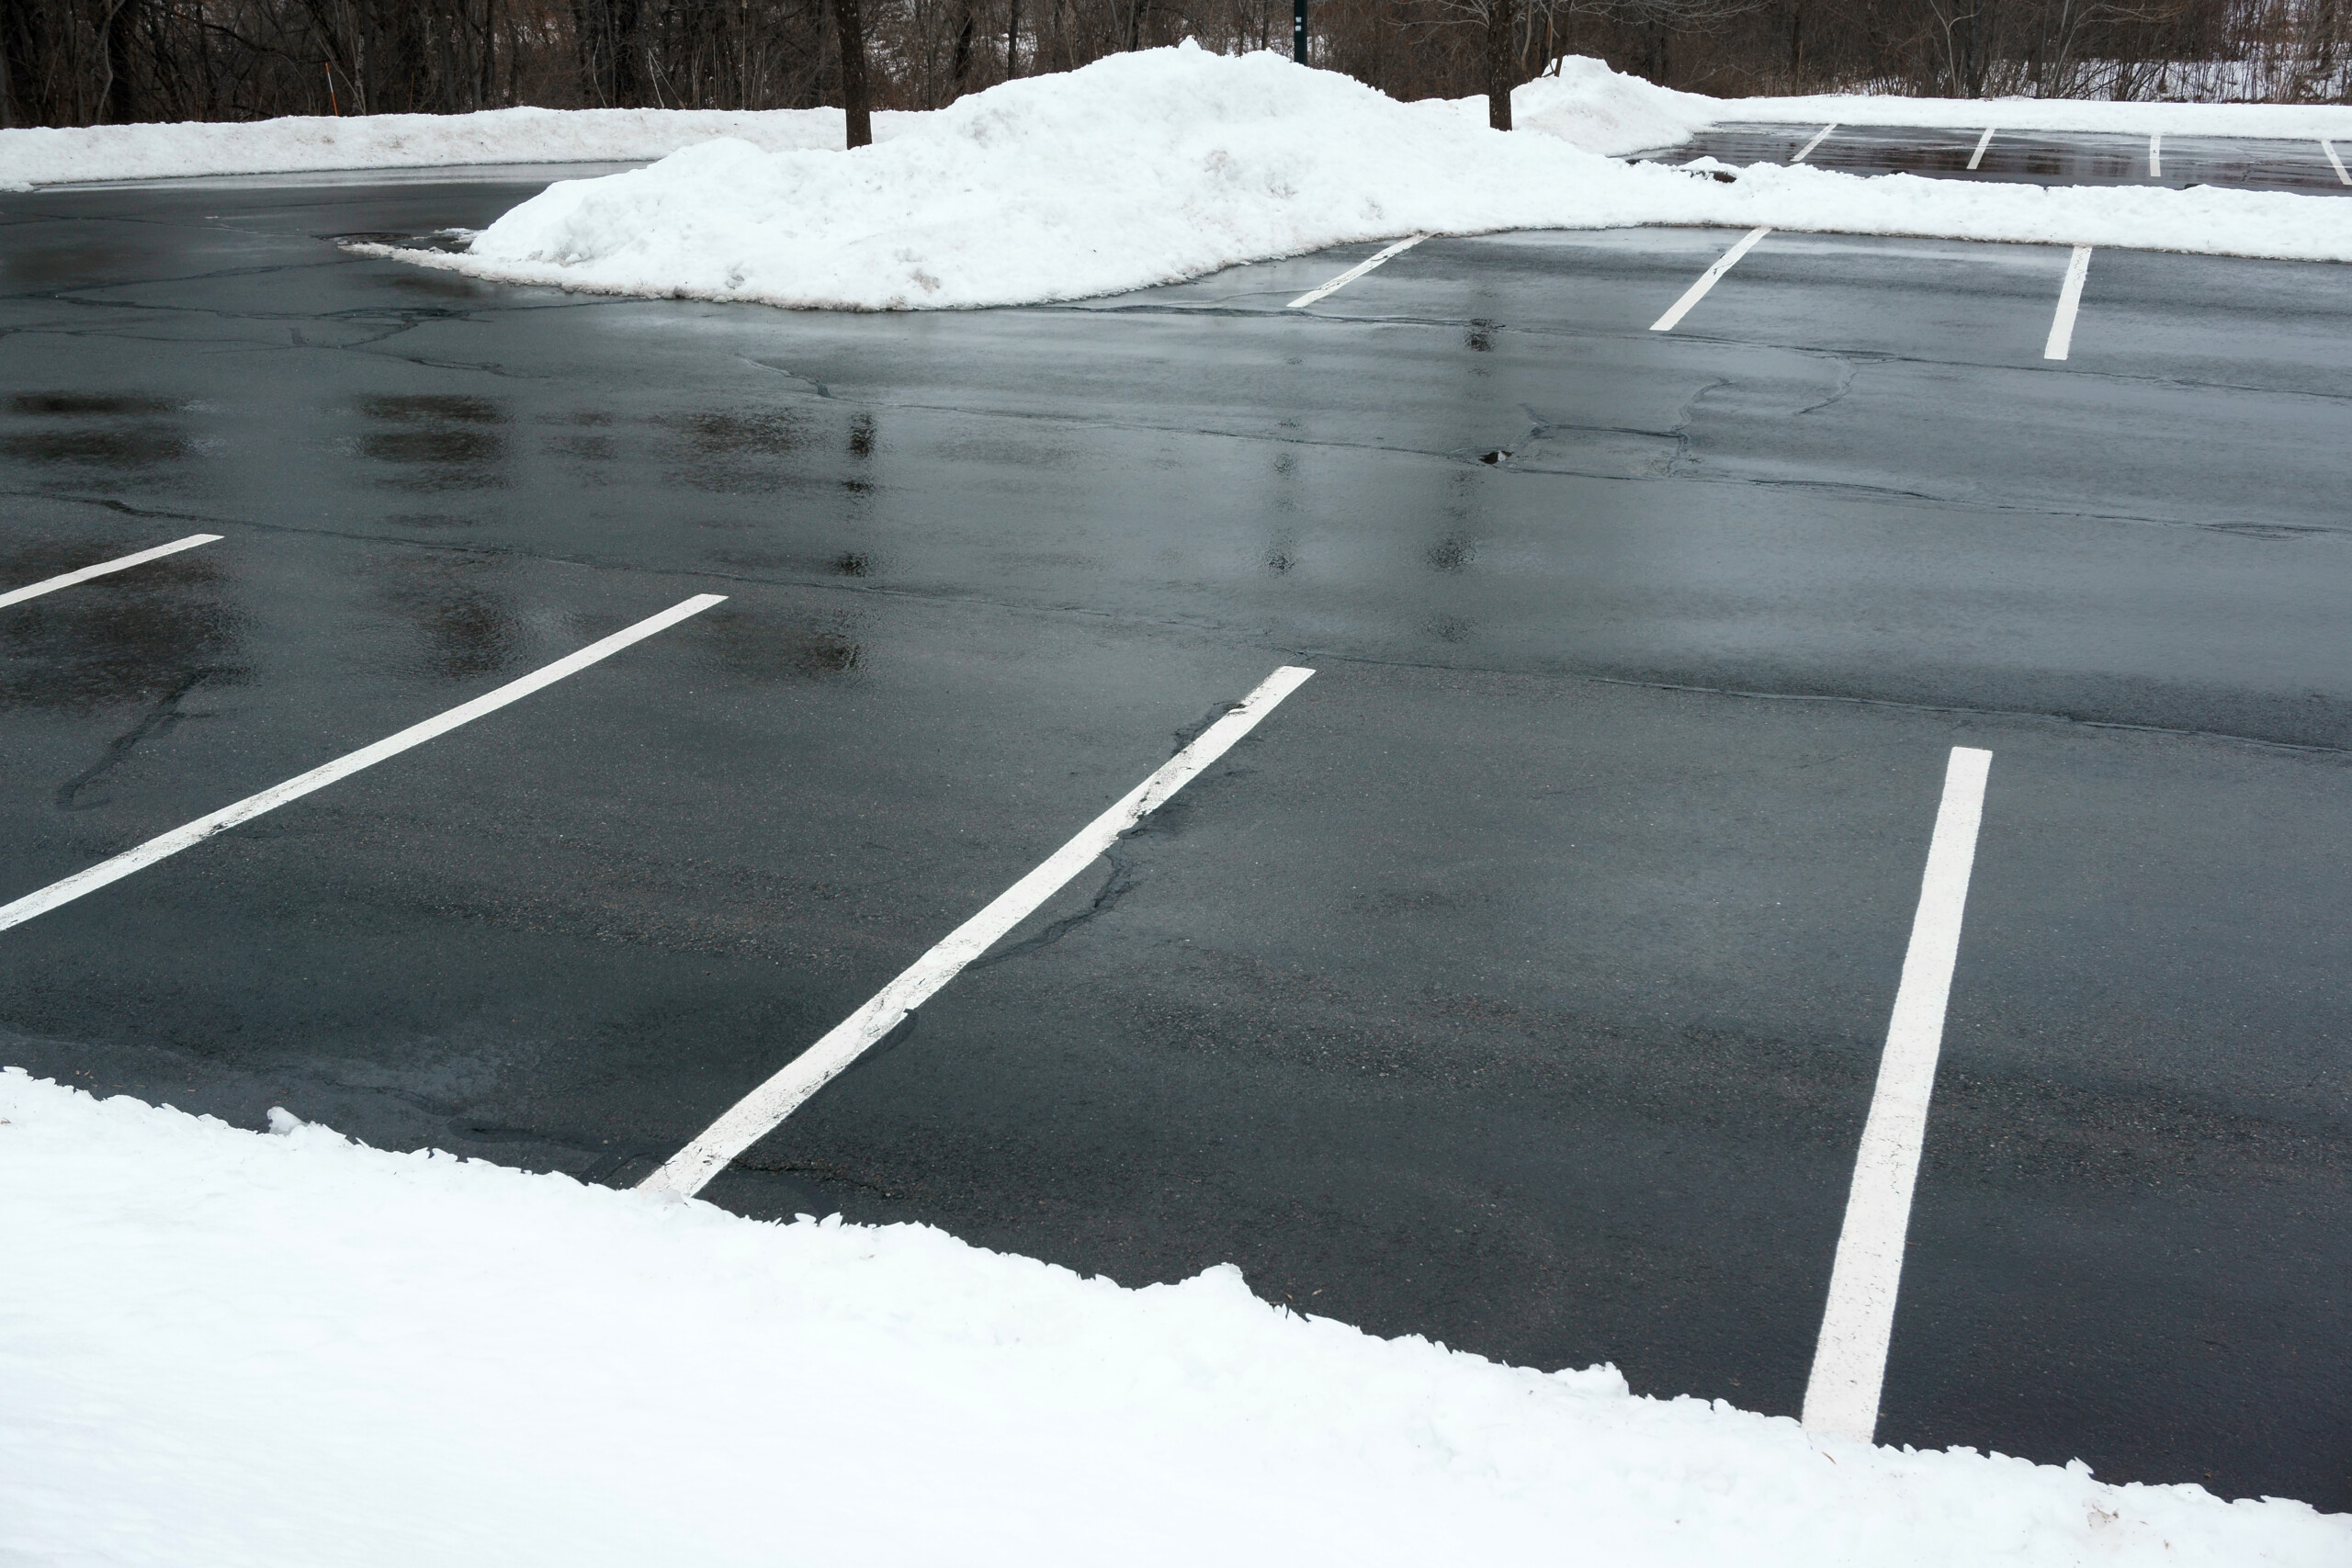 Snow Removal Service Cost: Is the Price Right for Your Business?